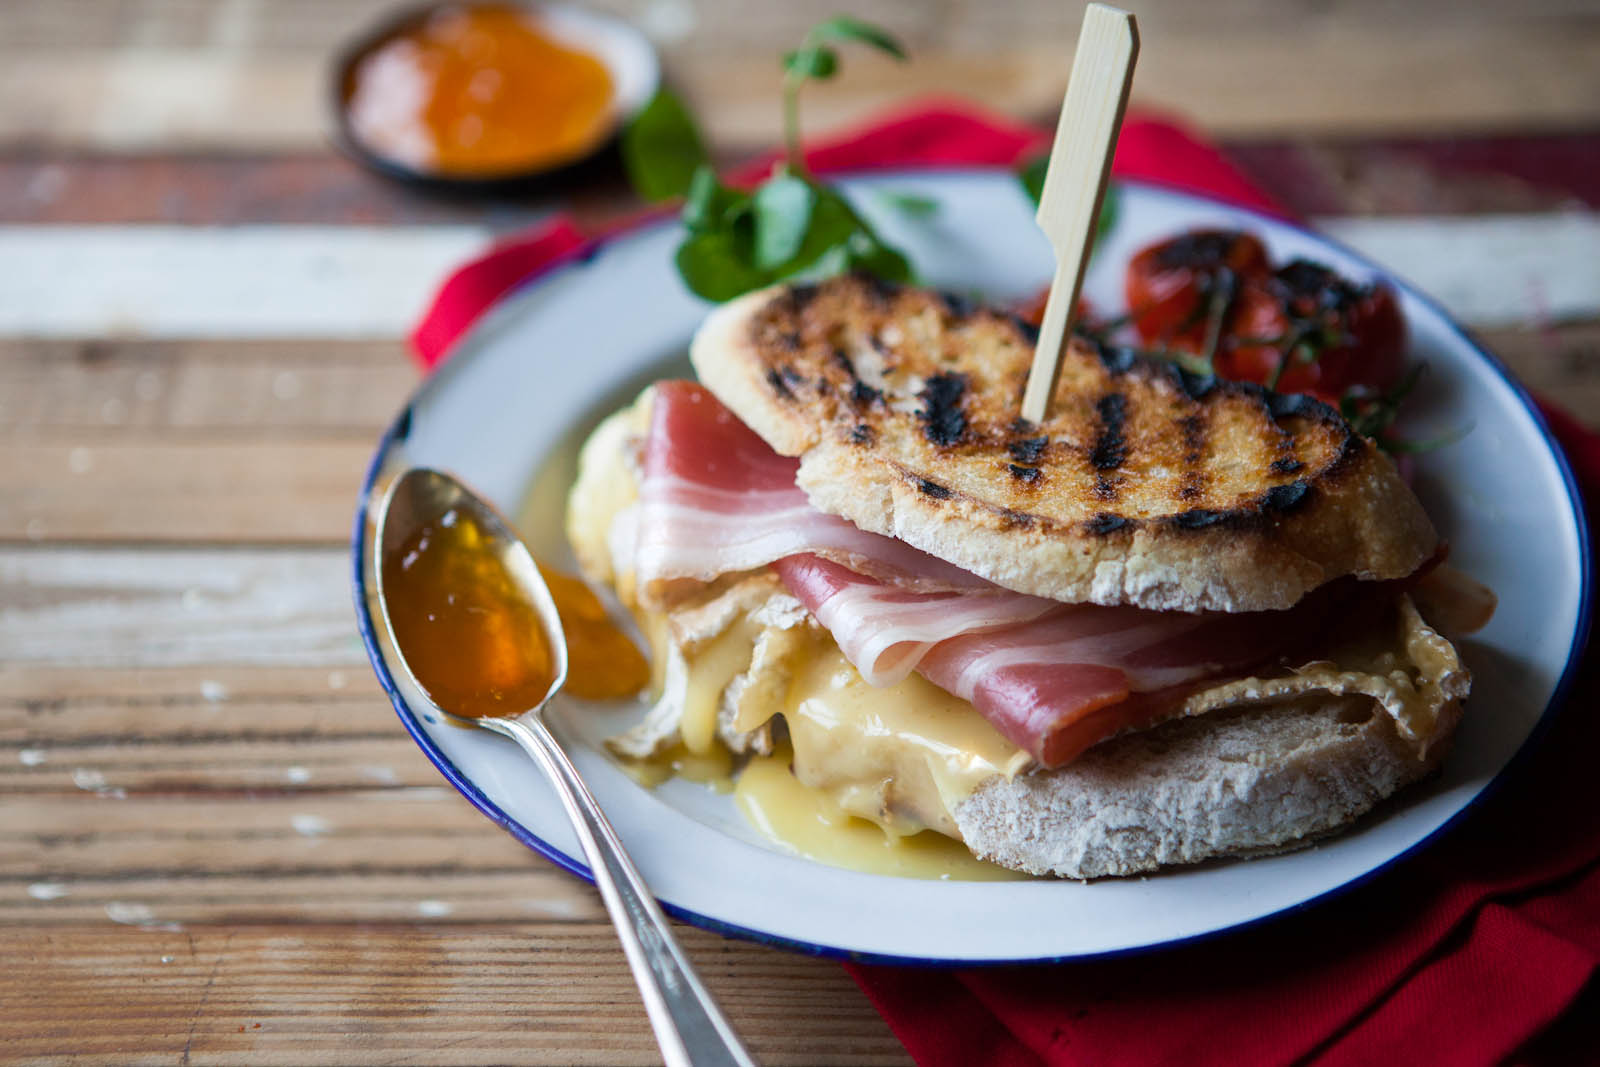 Delicious melted brie & ham toastie